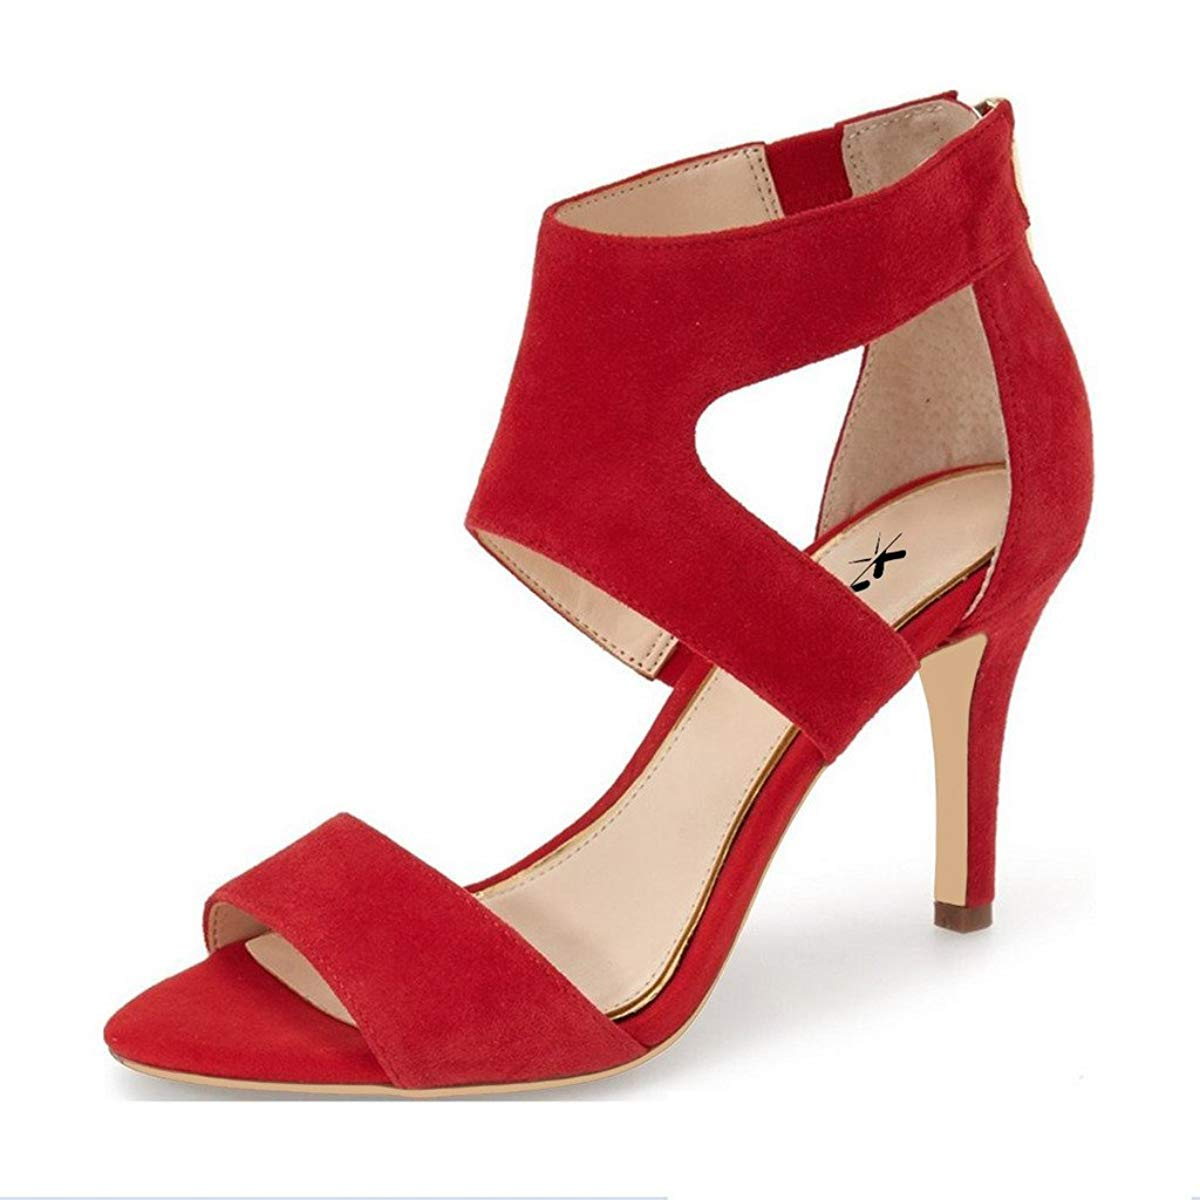 d5ccdebf70b5 XYD Prom Dancing Shoes Elegant Open Toe Strappy Heeled Sandals Ankle Wrap Dress  Pumps for Women Size 12 Red